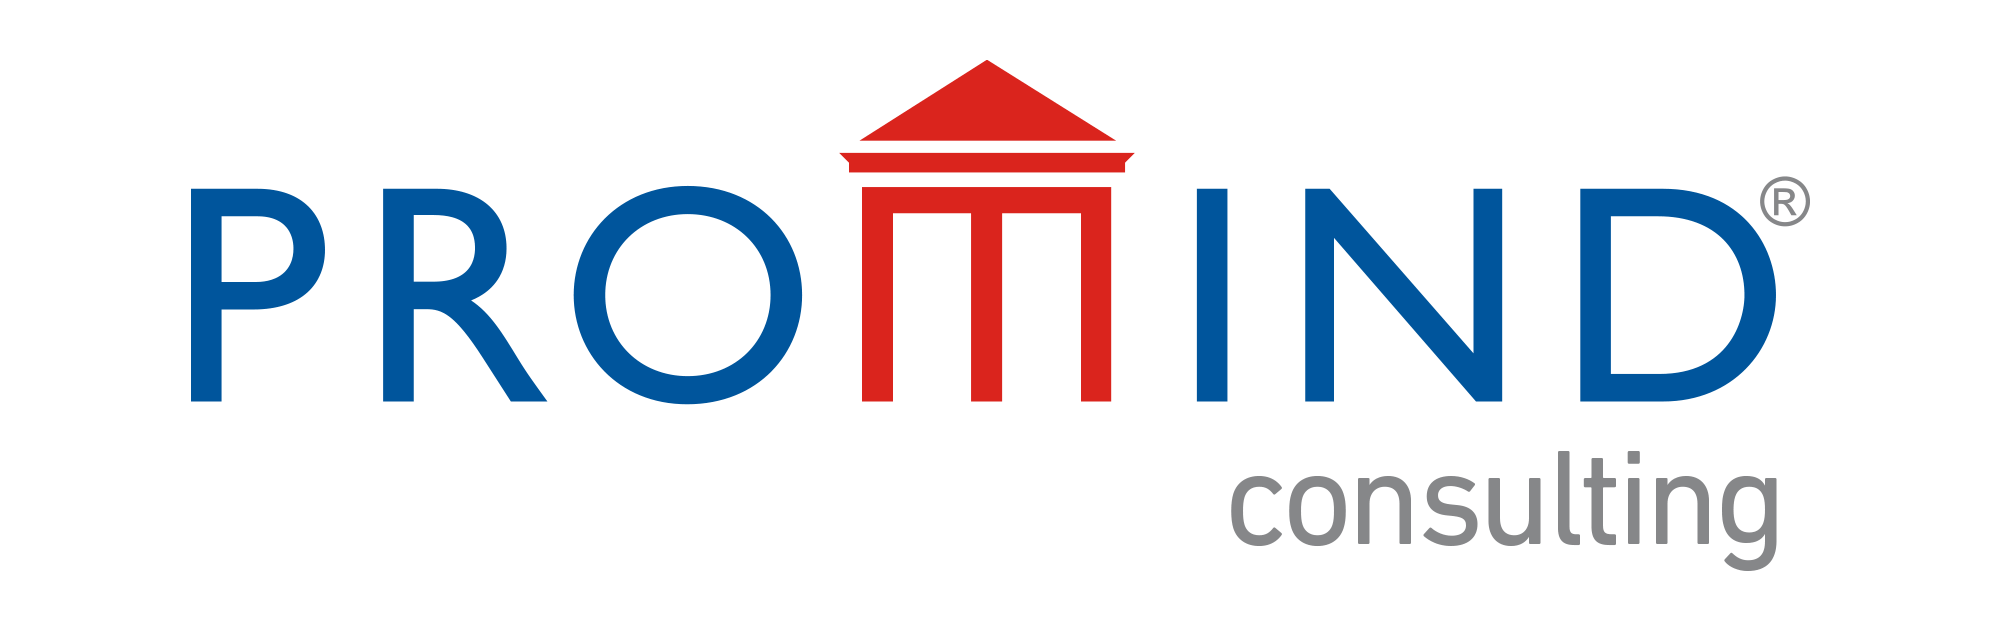 Promind consulting